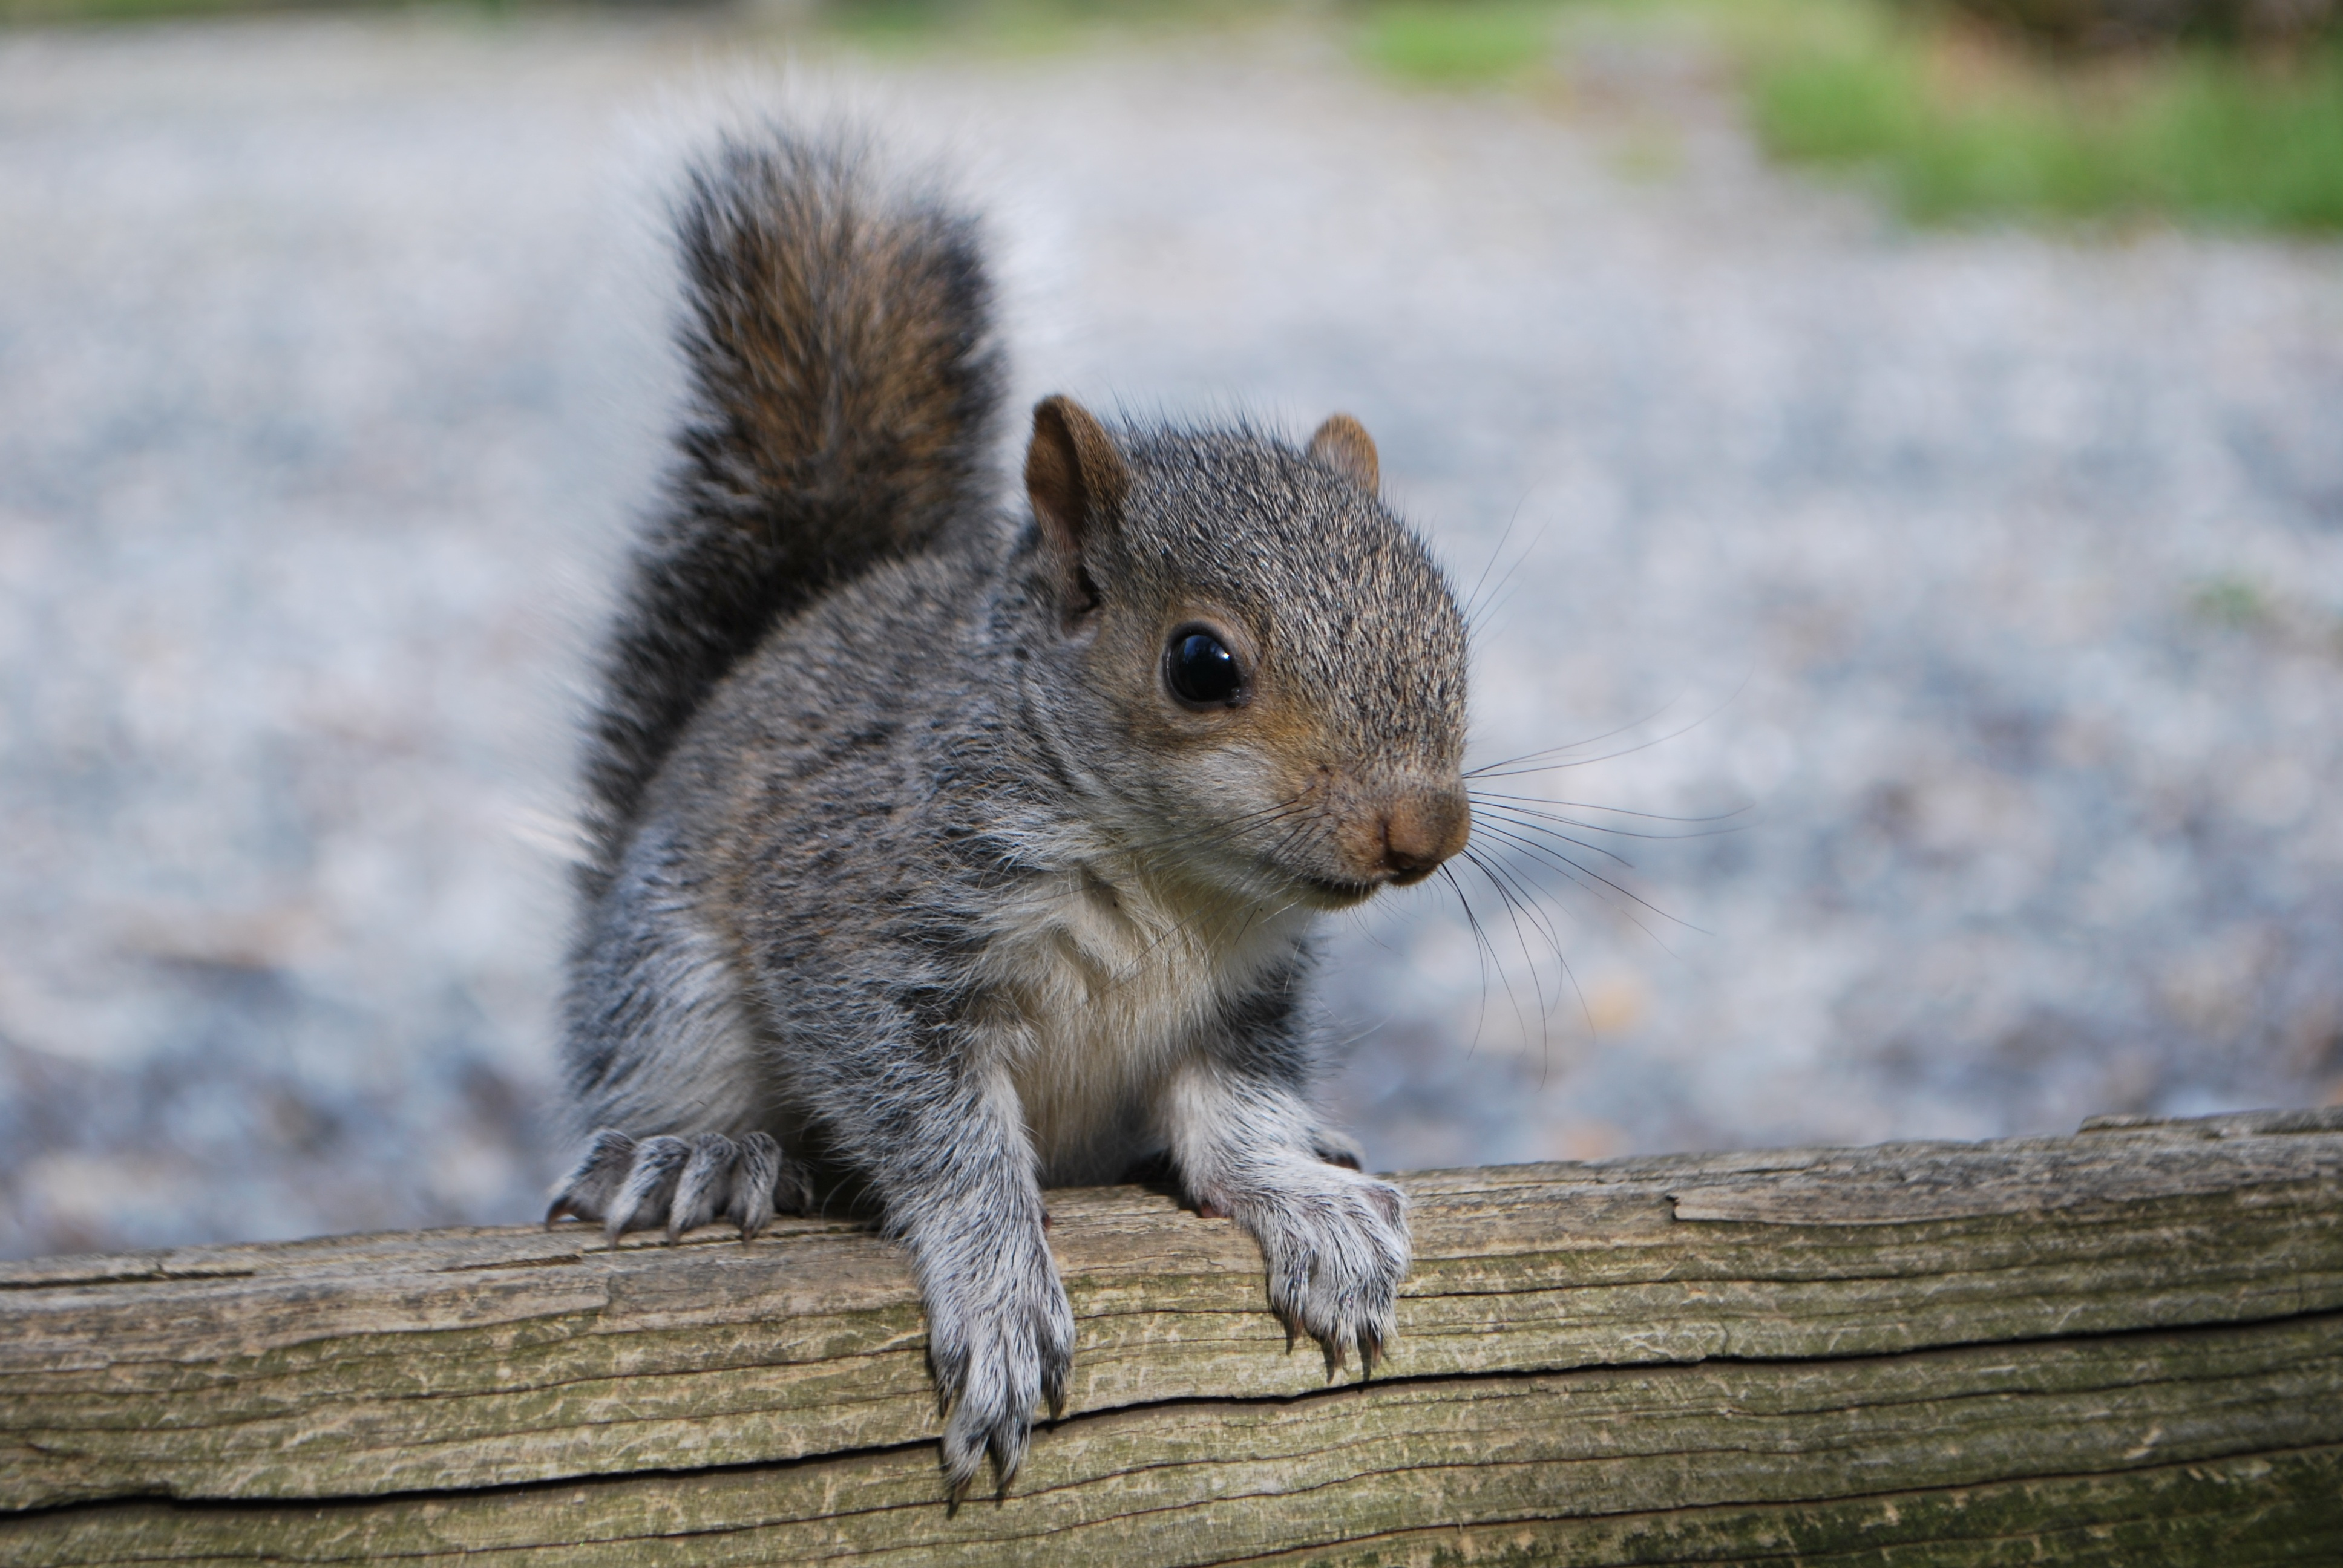 106499 download wallpaper Animals, Squirrel, Rodent, Log screensavers and pictures for free